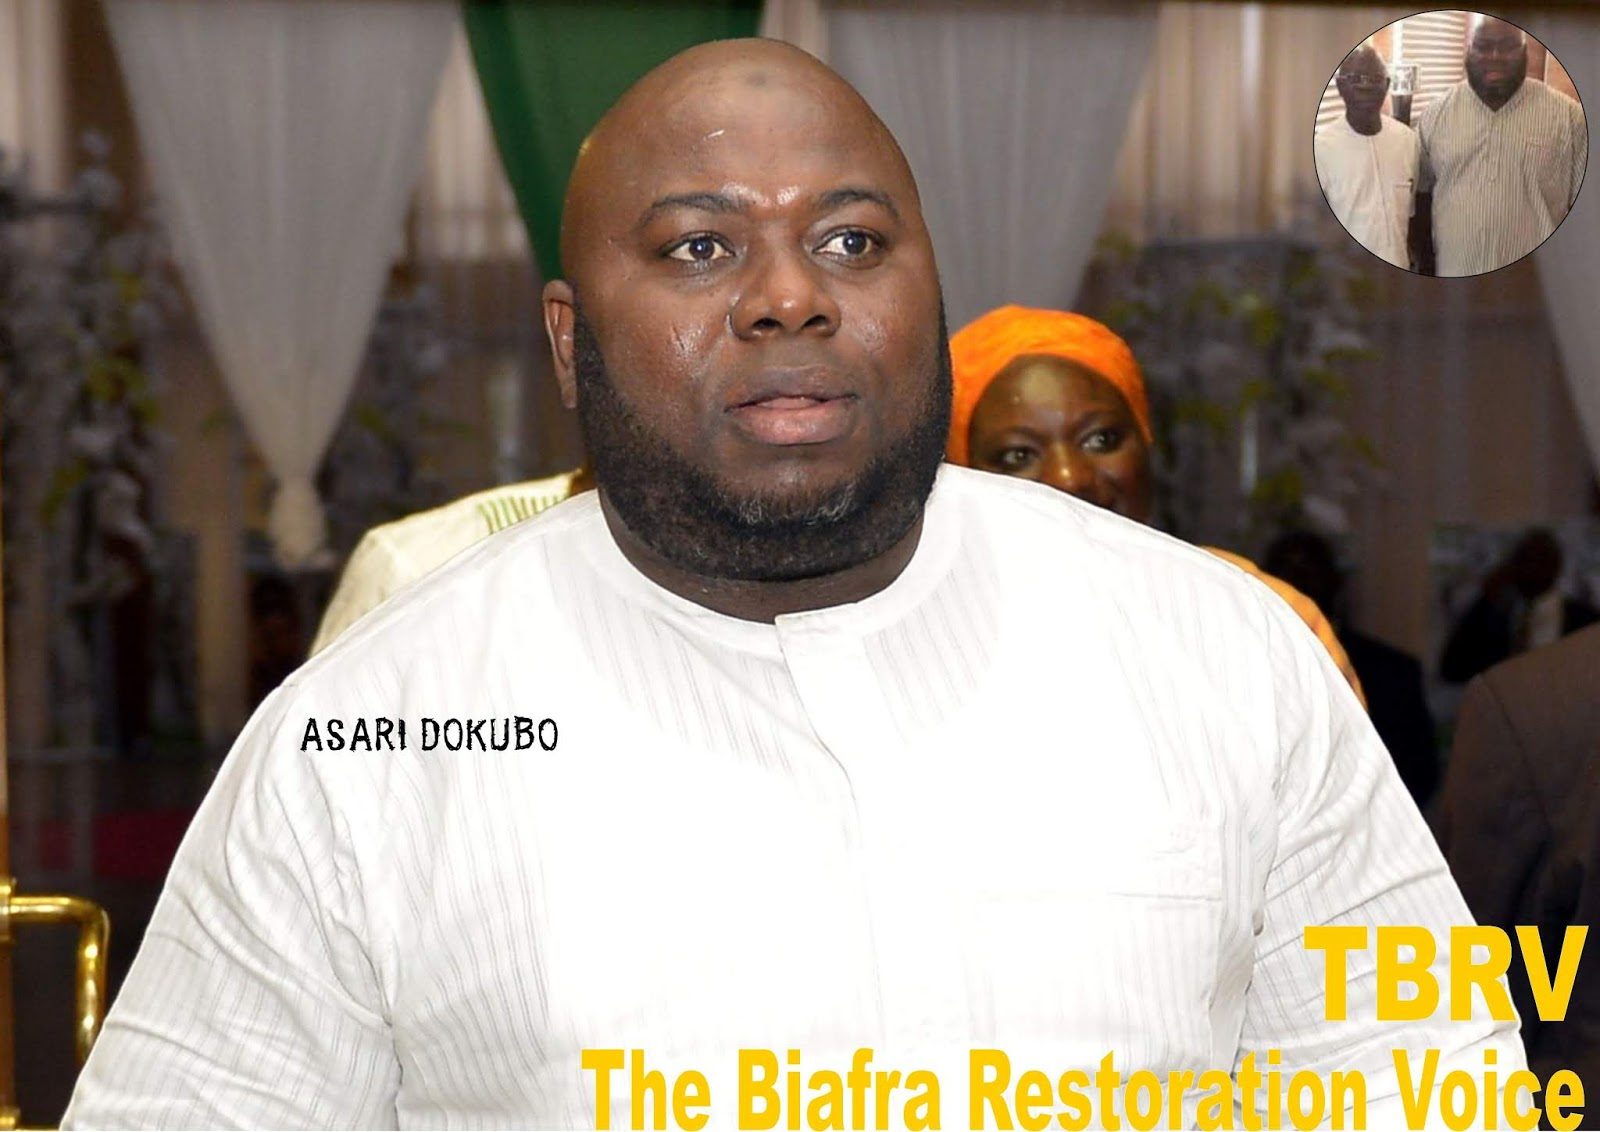 asari dokubo press conference video